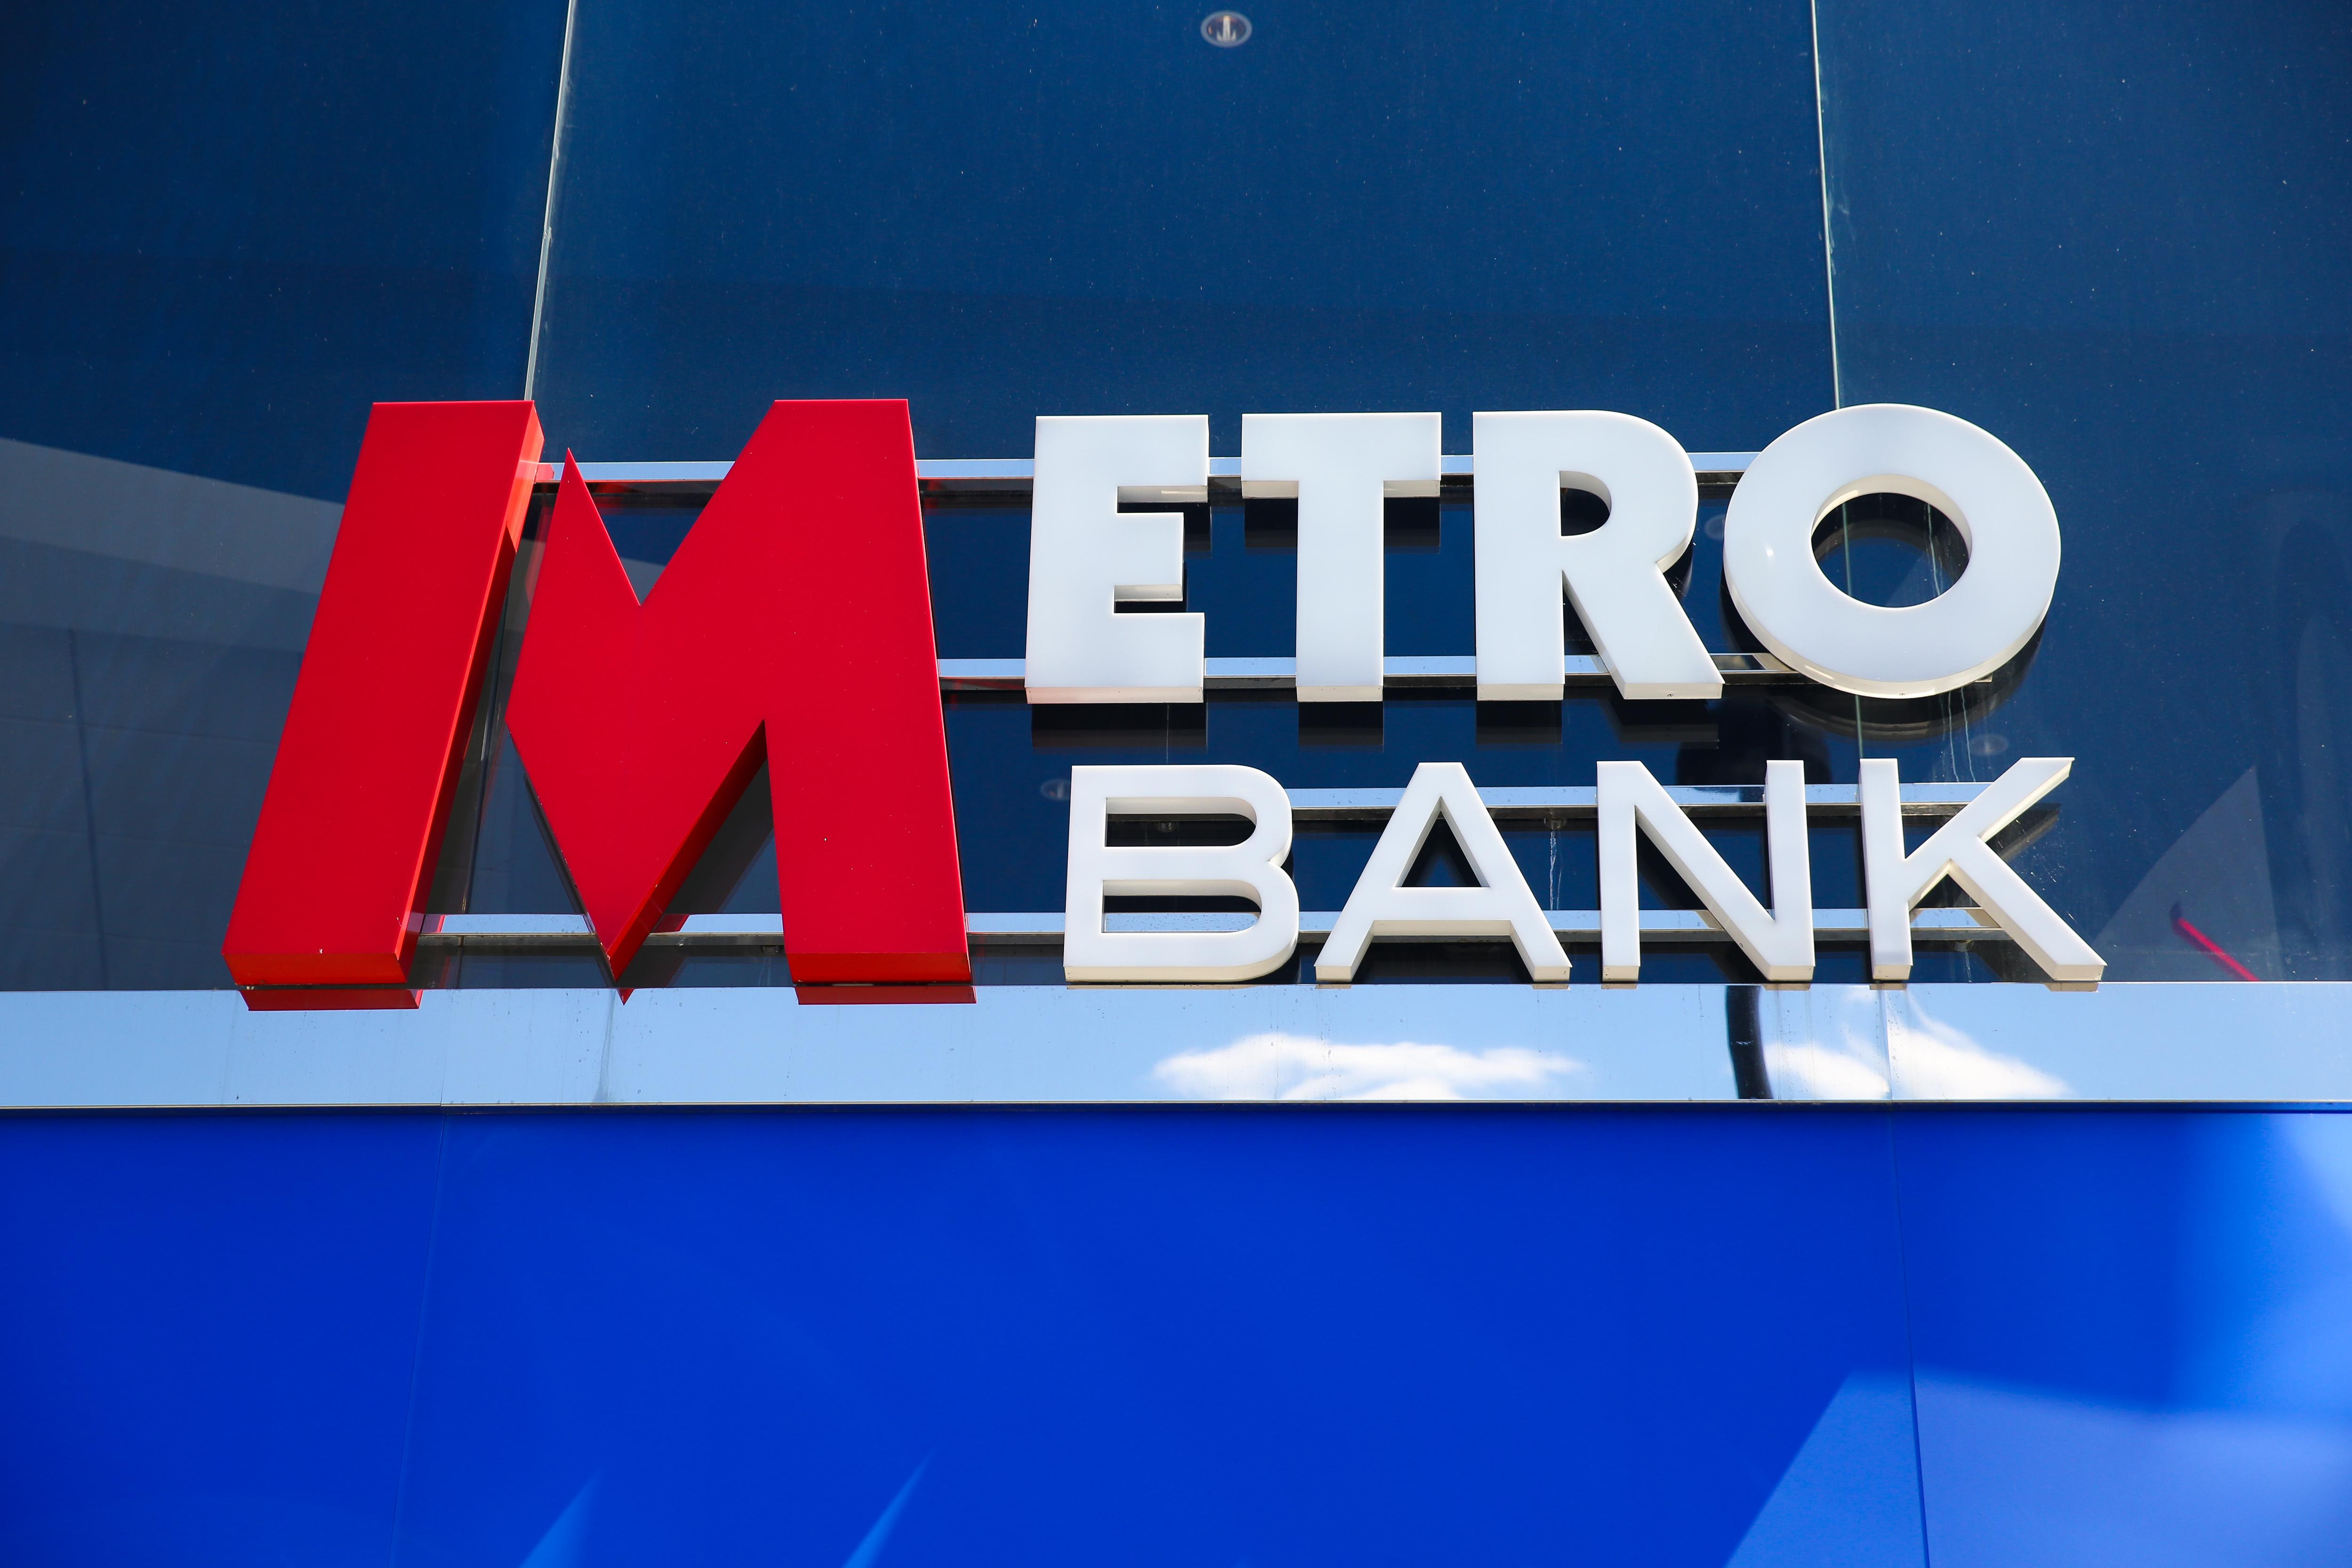 What to Watch: Metro Bank chairman, Thomas Cook bill, Brexit trade deal